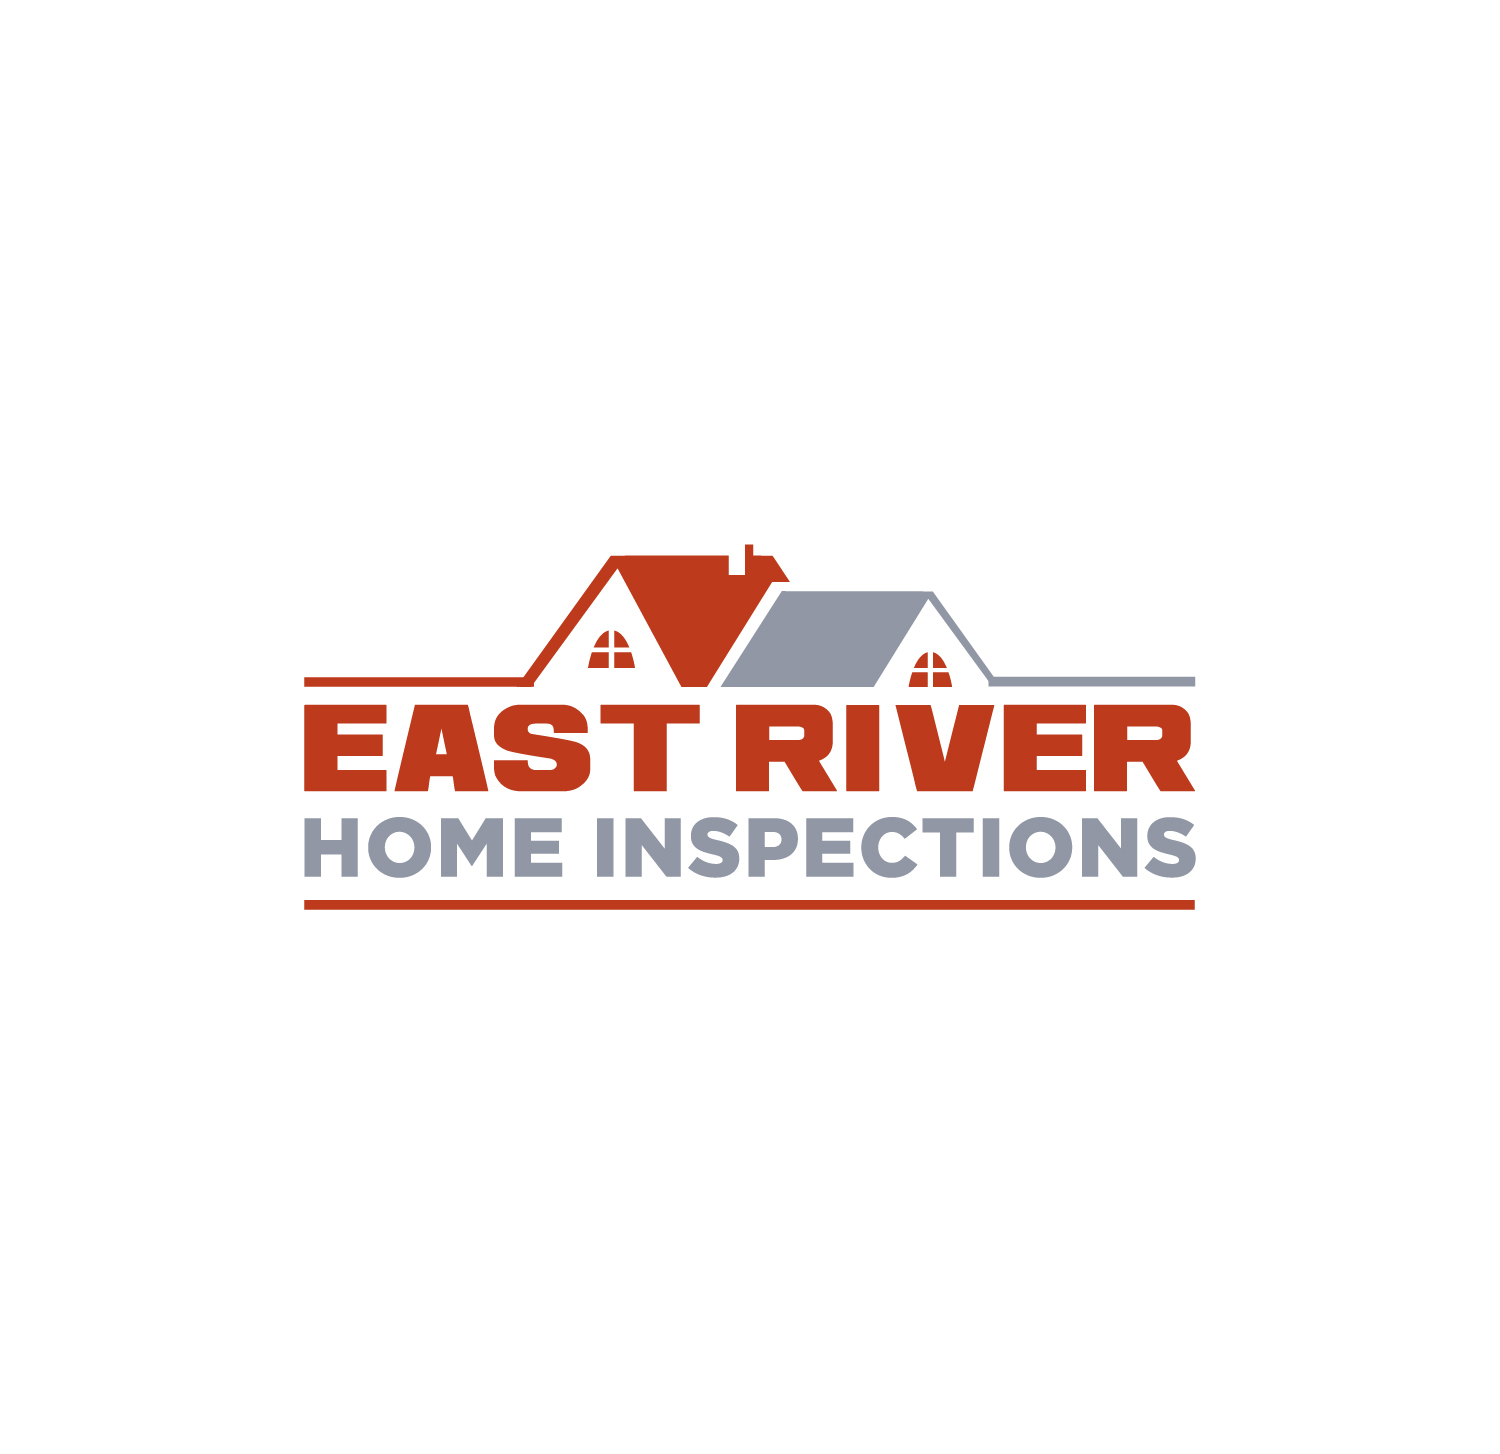 East river home inspections final 01